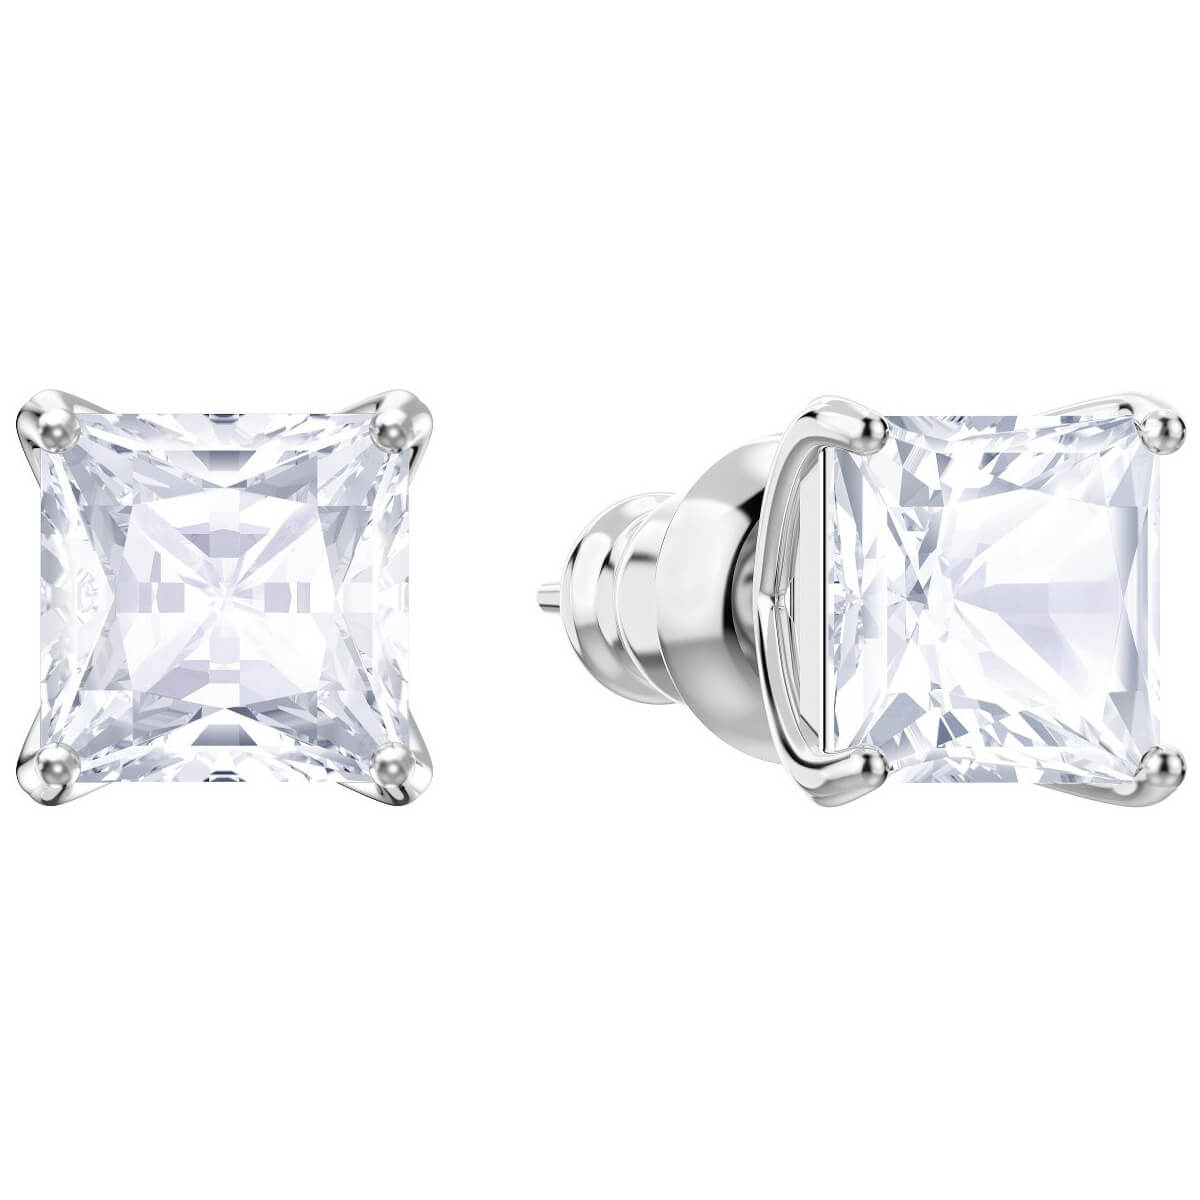 Swarovski Earrings Stud, Attract, white, rhodium plating 5430365